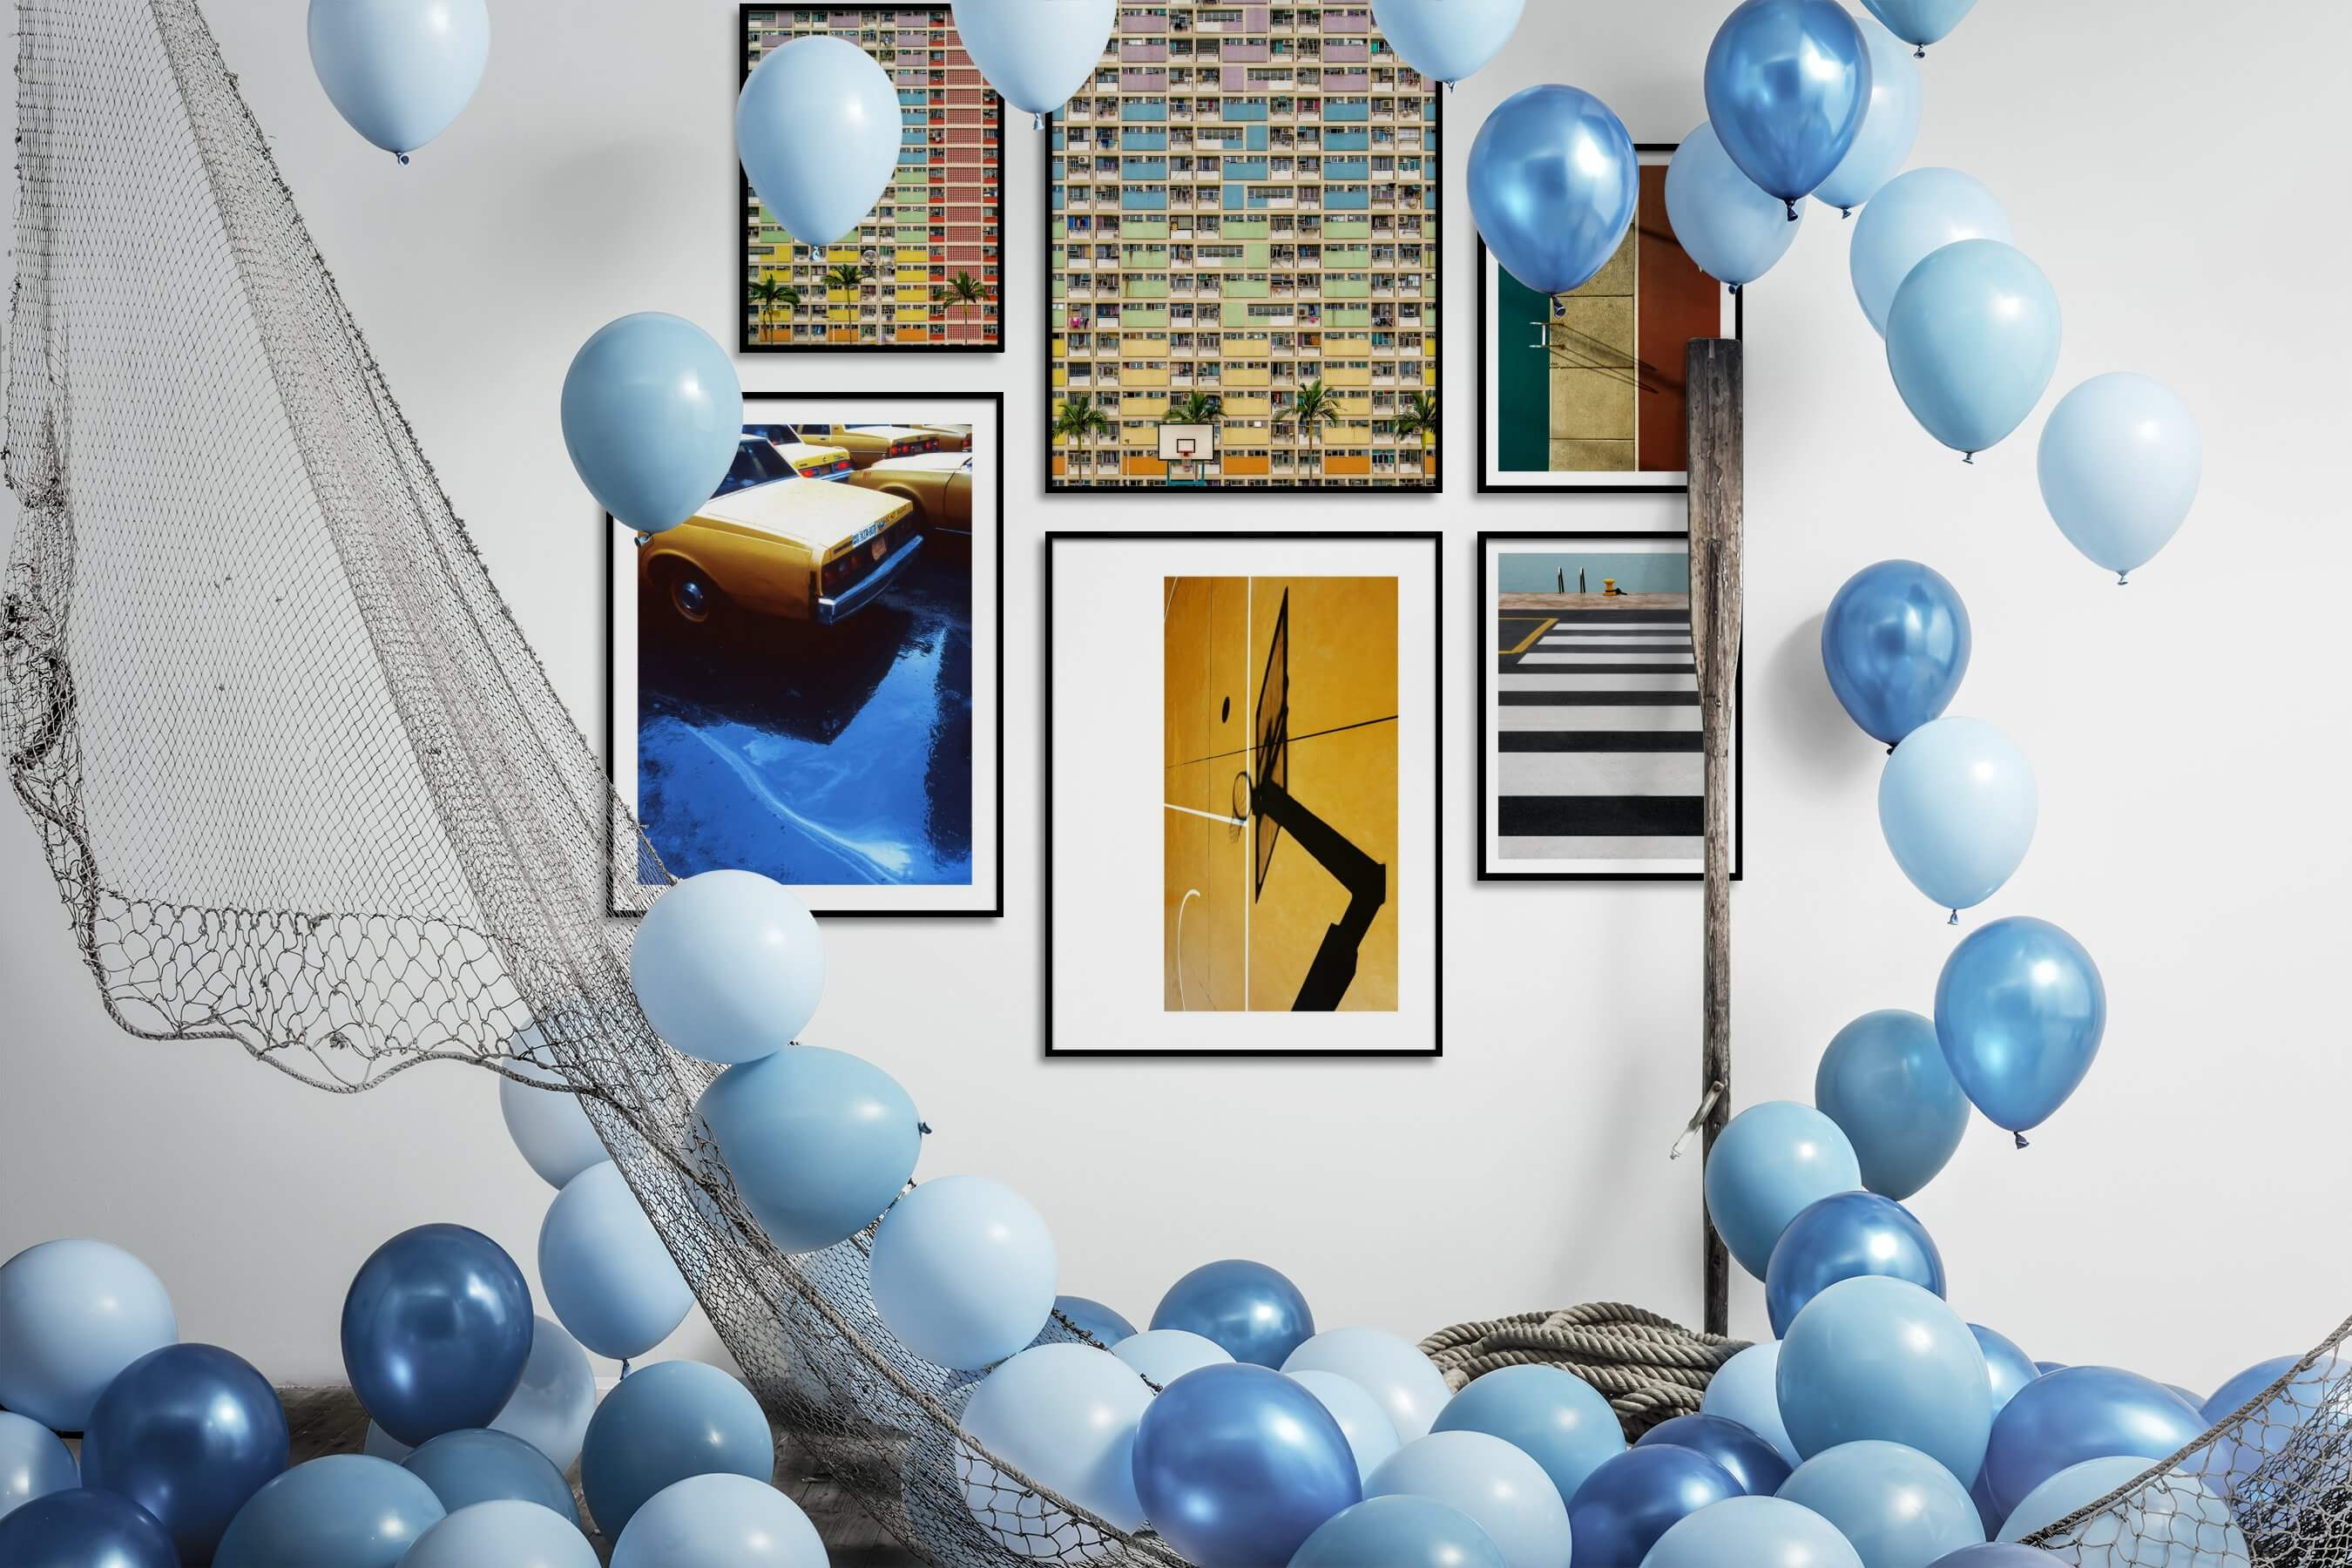 Gallery wall idea with six framed pictures arranged on a wall depicting For the Maximalist, City Life, Vintage, Americana, For the Moderate, and Beach & Water